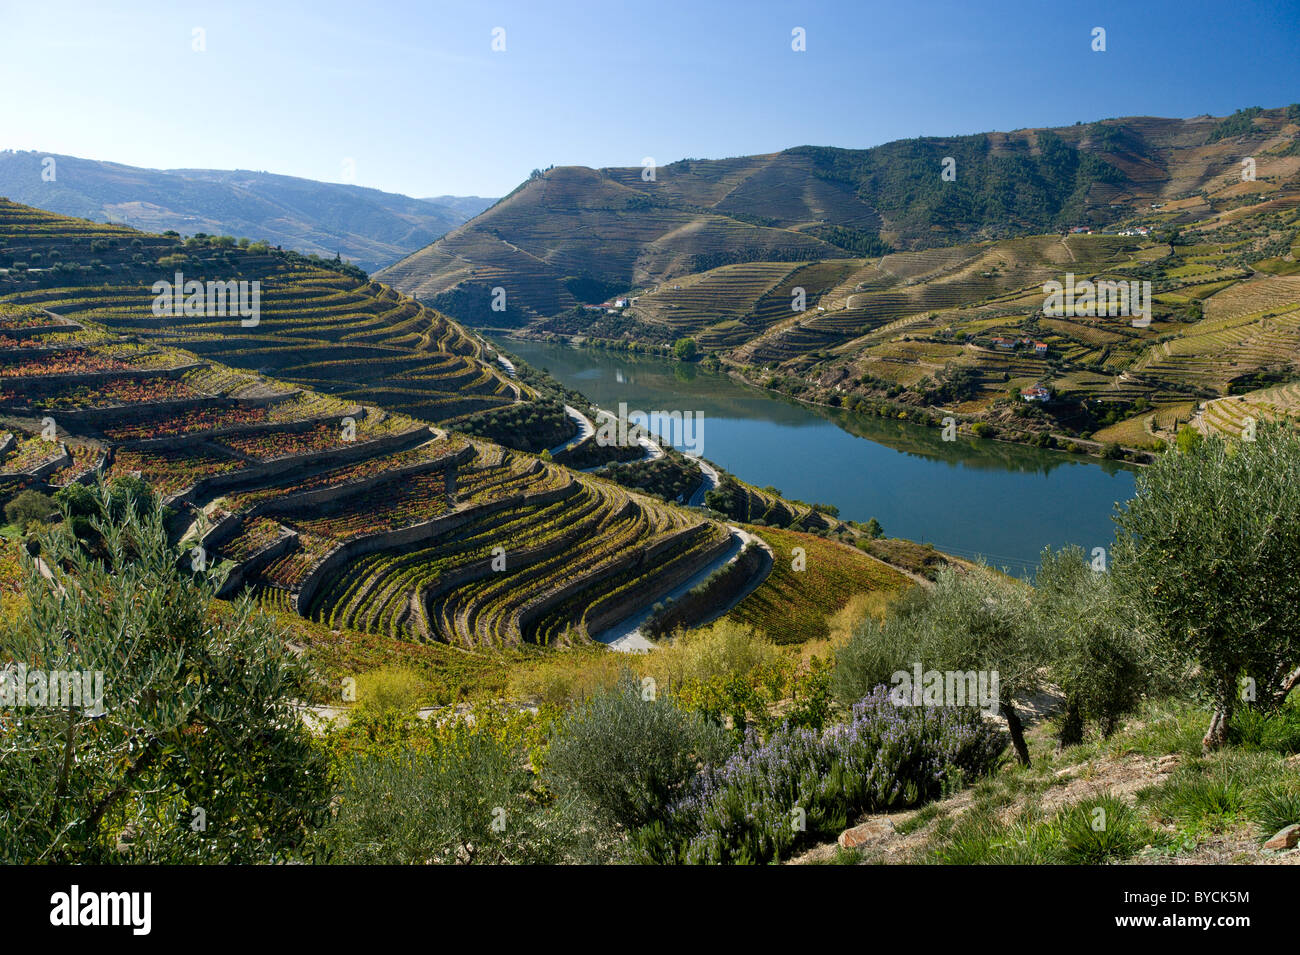 Portugal, the Alto Douro, vineyards and the river, near Regua - Stock Image